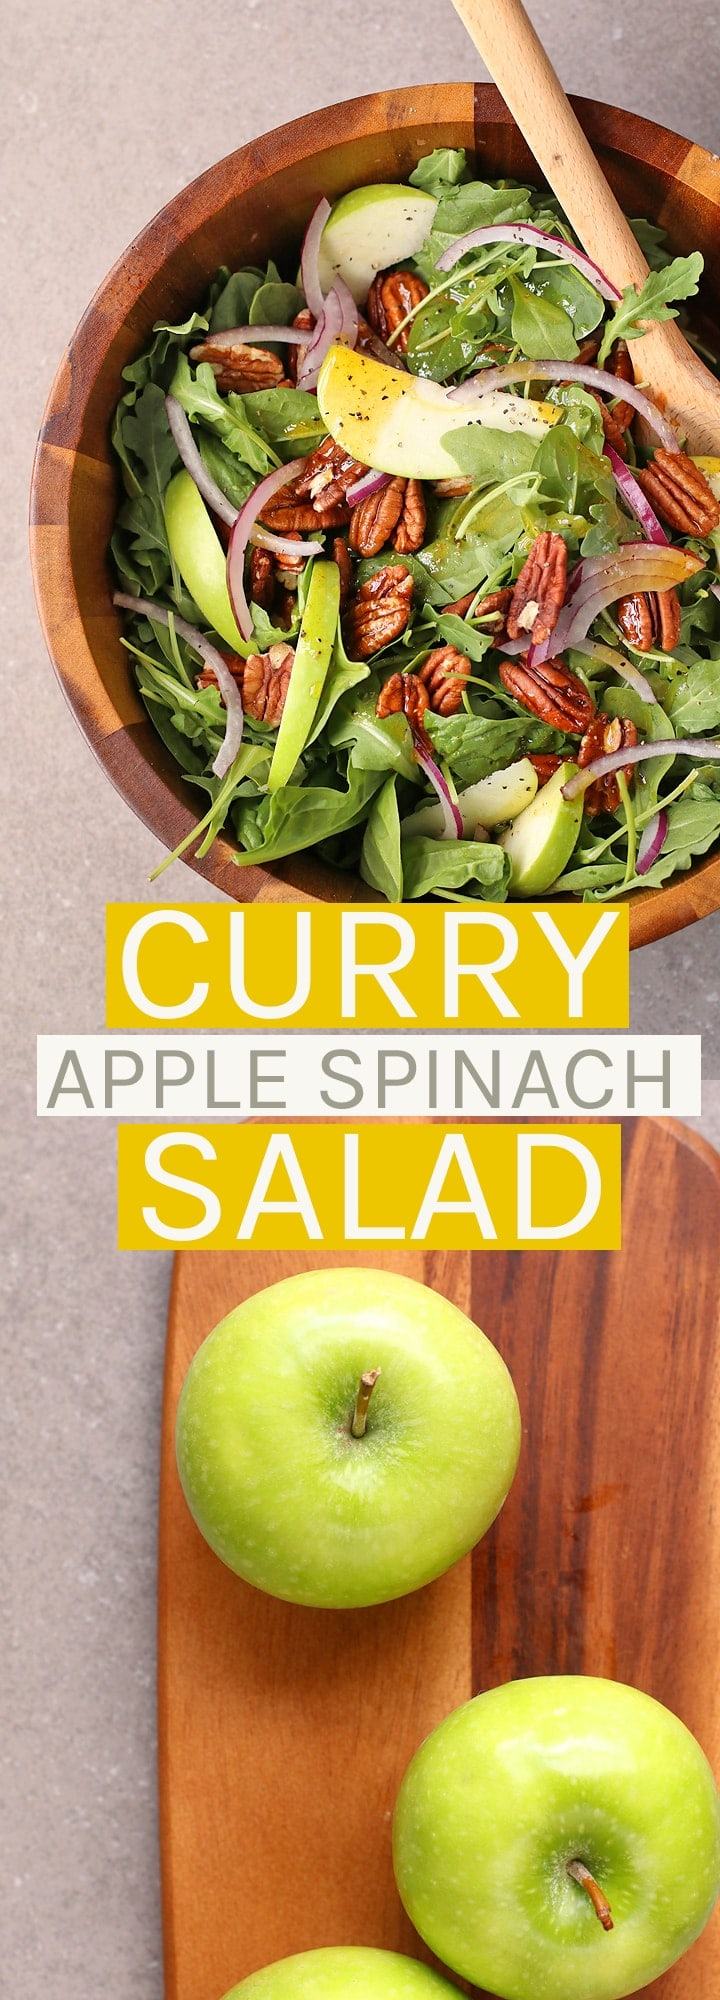 The perfect fall salad, this Curry Apple Spinach Salad is made with a mixture of spinach and arugula and tossed in a curry vinaigrette.